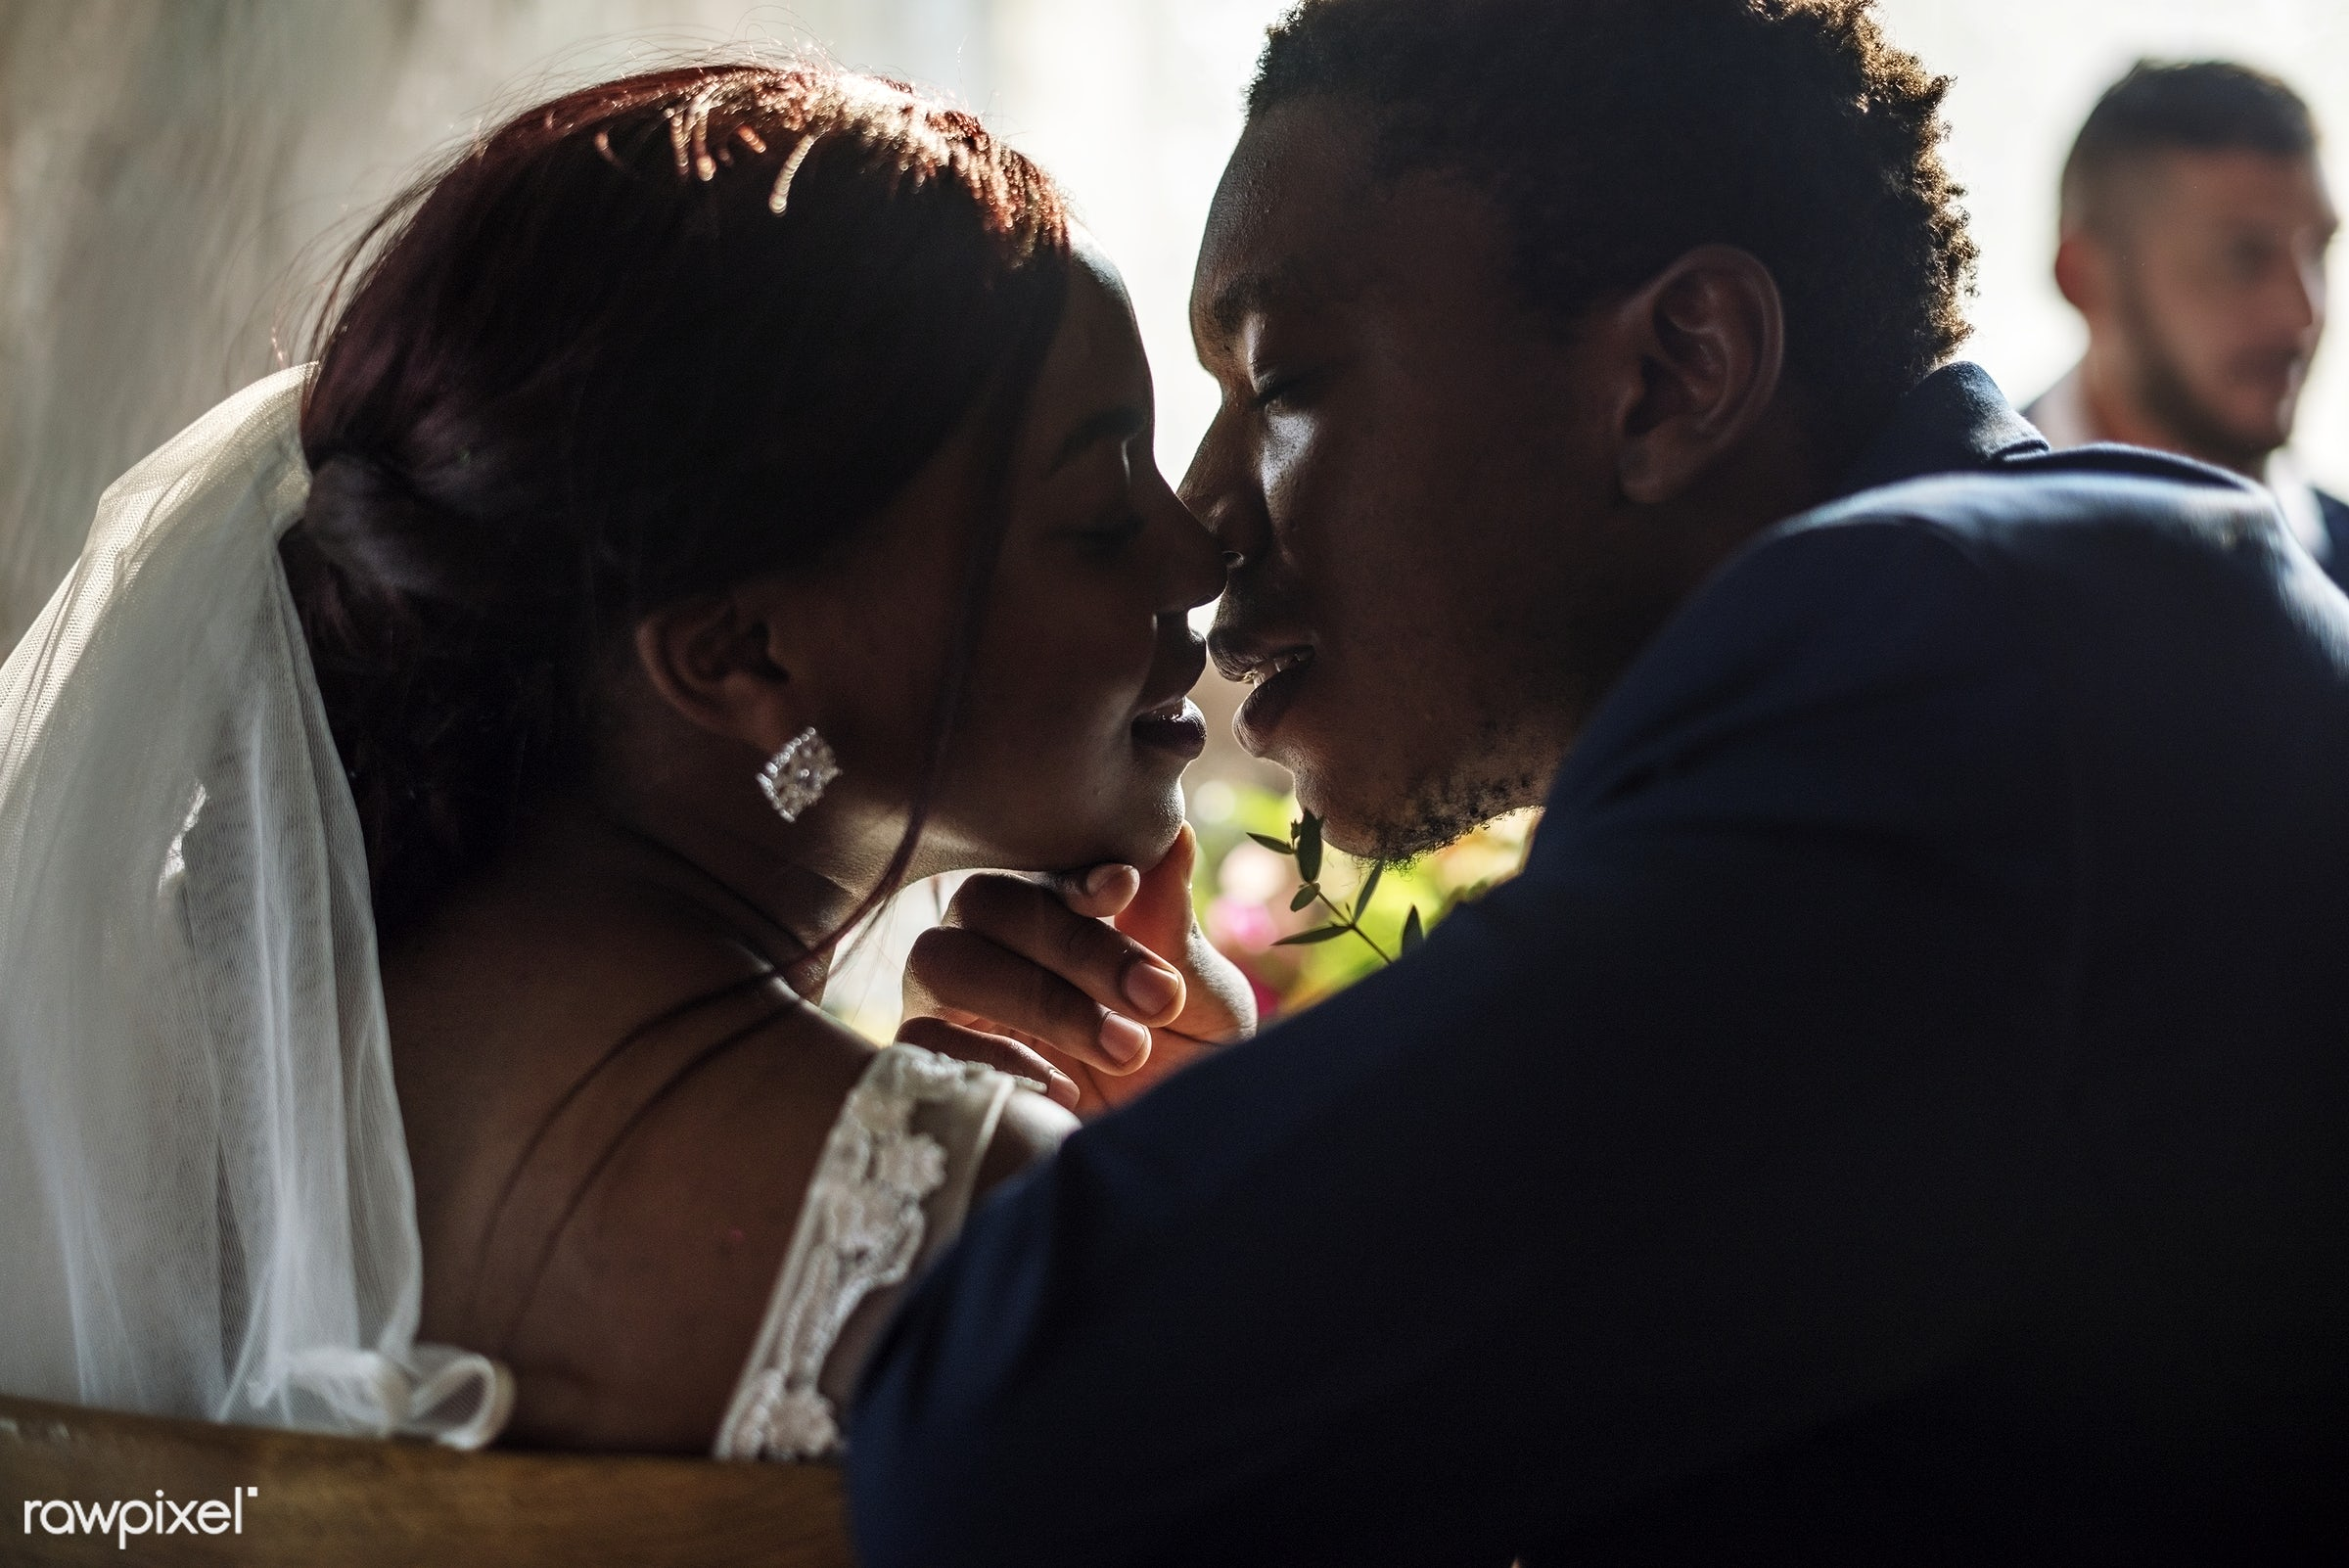 occasion, husband, people, love, married, spouse, bride, cheerful, black, kissing, african descent, newlywed, togetherness,...